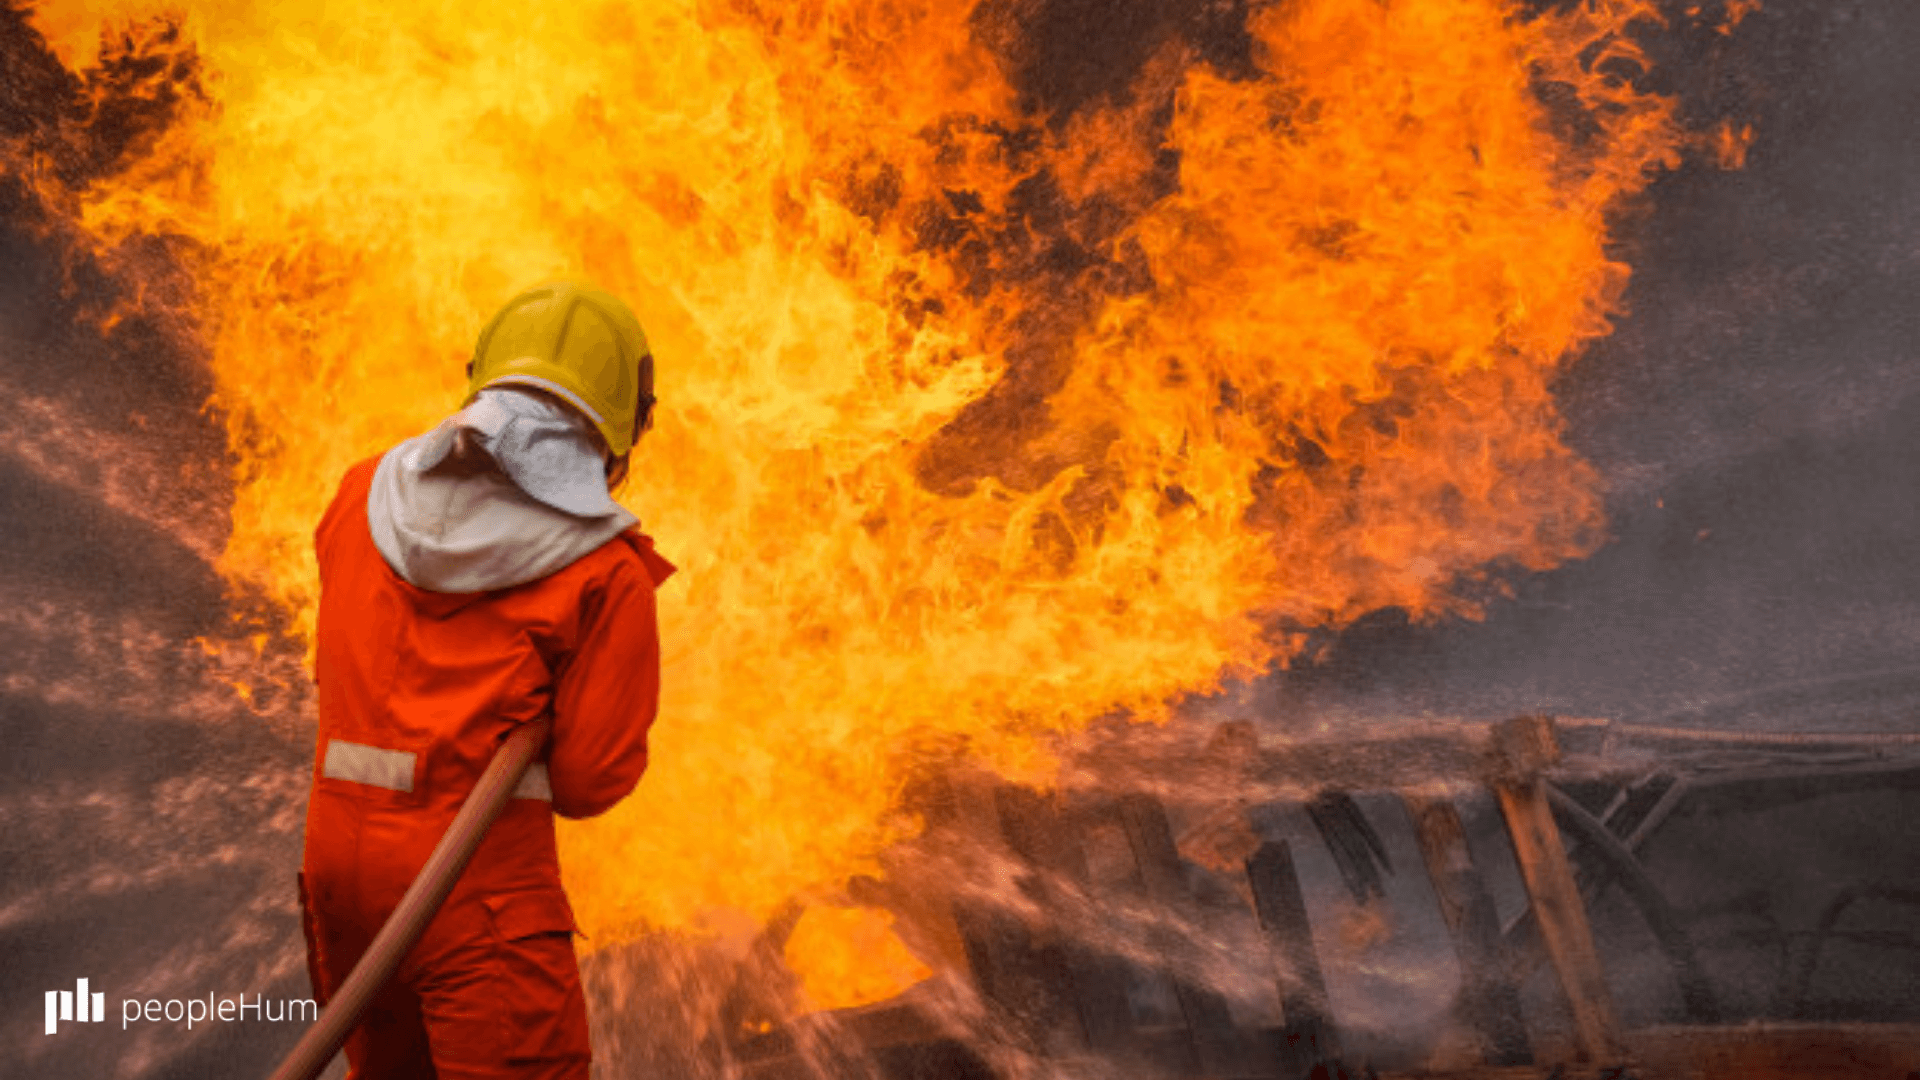 Do you have a toxic 'fire-fighting' culture? Fix it or get burned